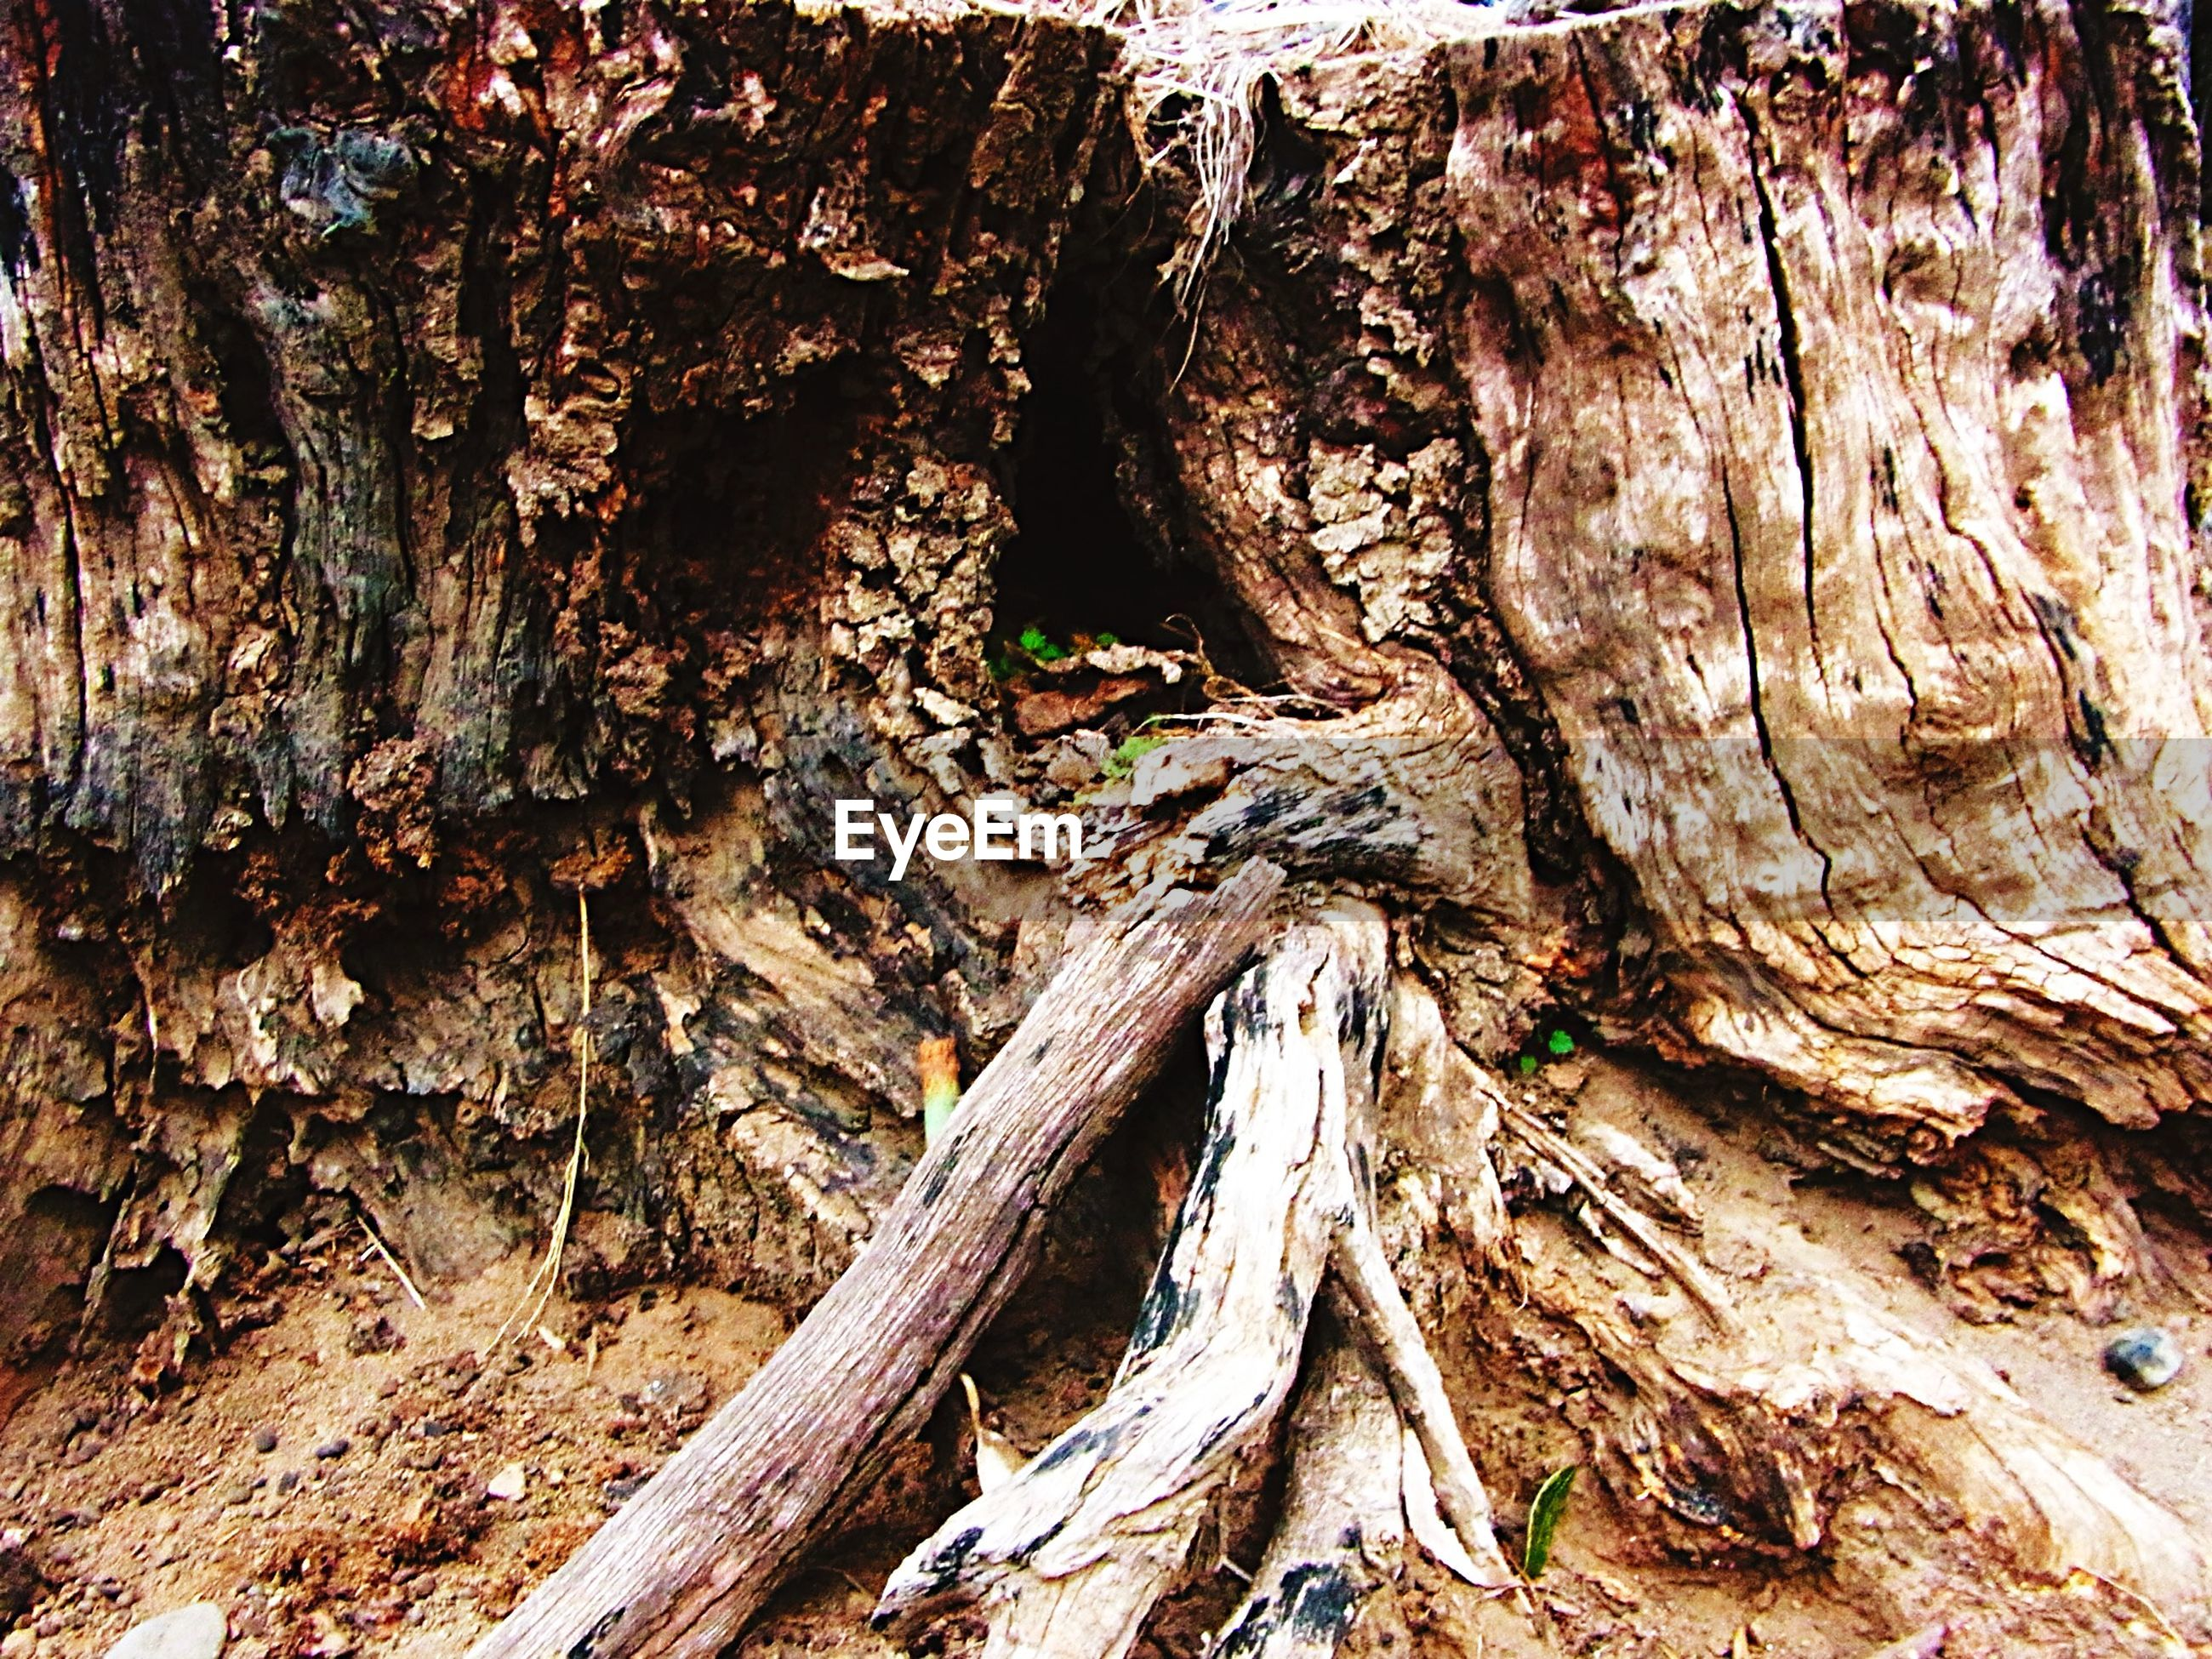 tree trunk, textured, tree, rough, nature, wood - material, bark, close-up, natural pattern, day, forest, outdoors, tranquility, rock - object, log, no people, root, rock formation, backgrounds, dead plant